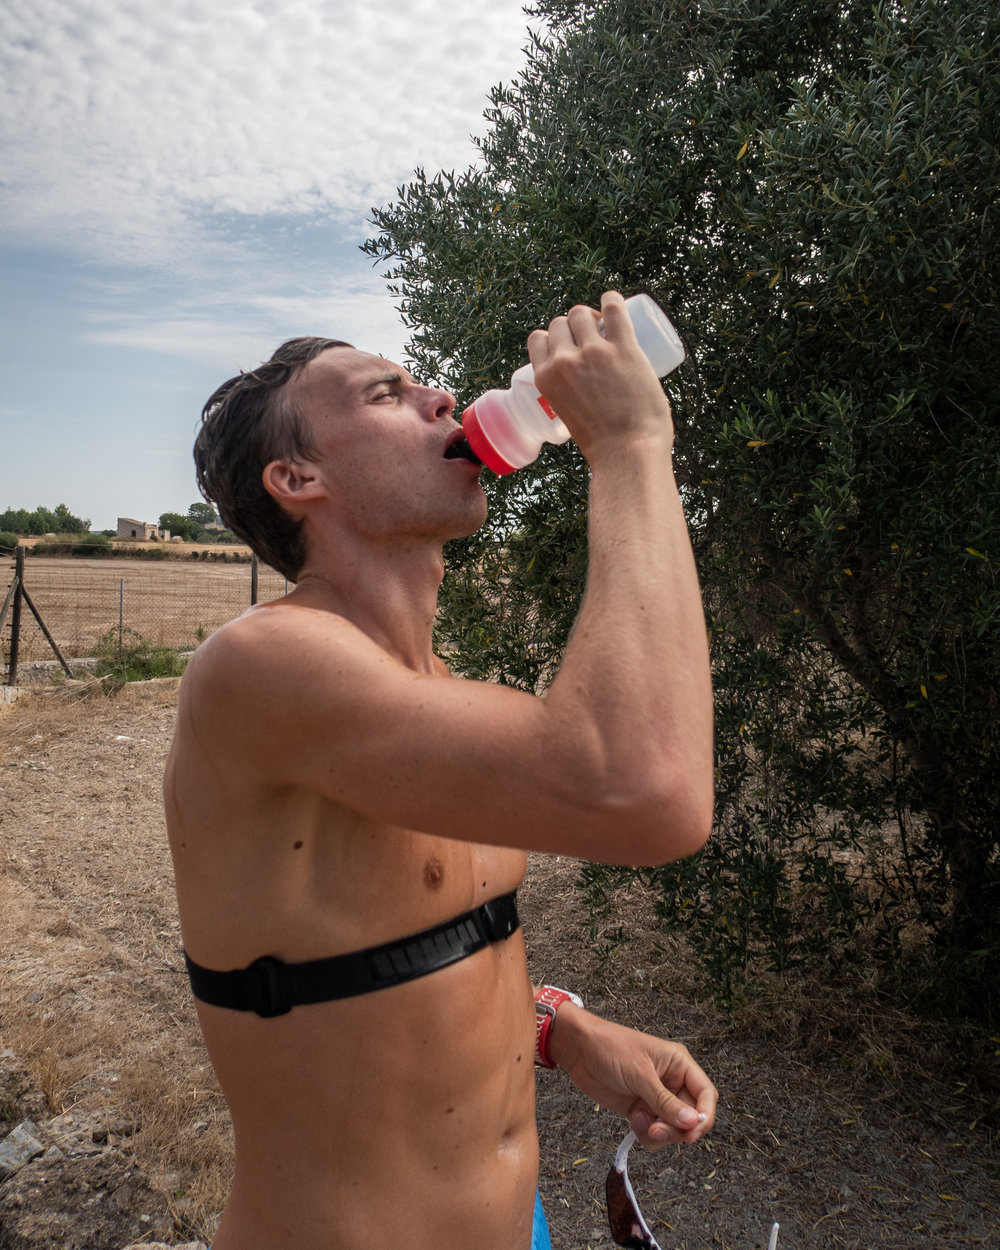 running-in-heat-aug-2018-water-34.jpg